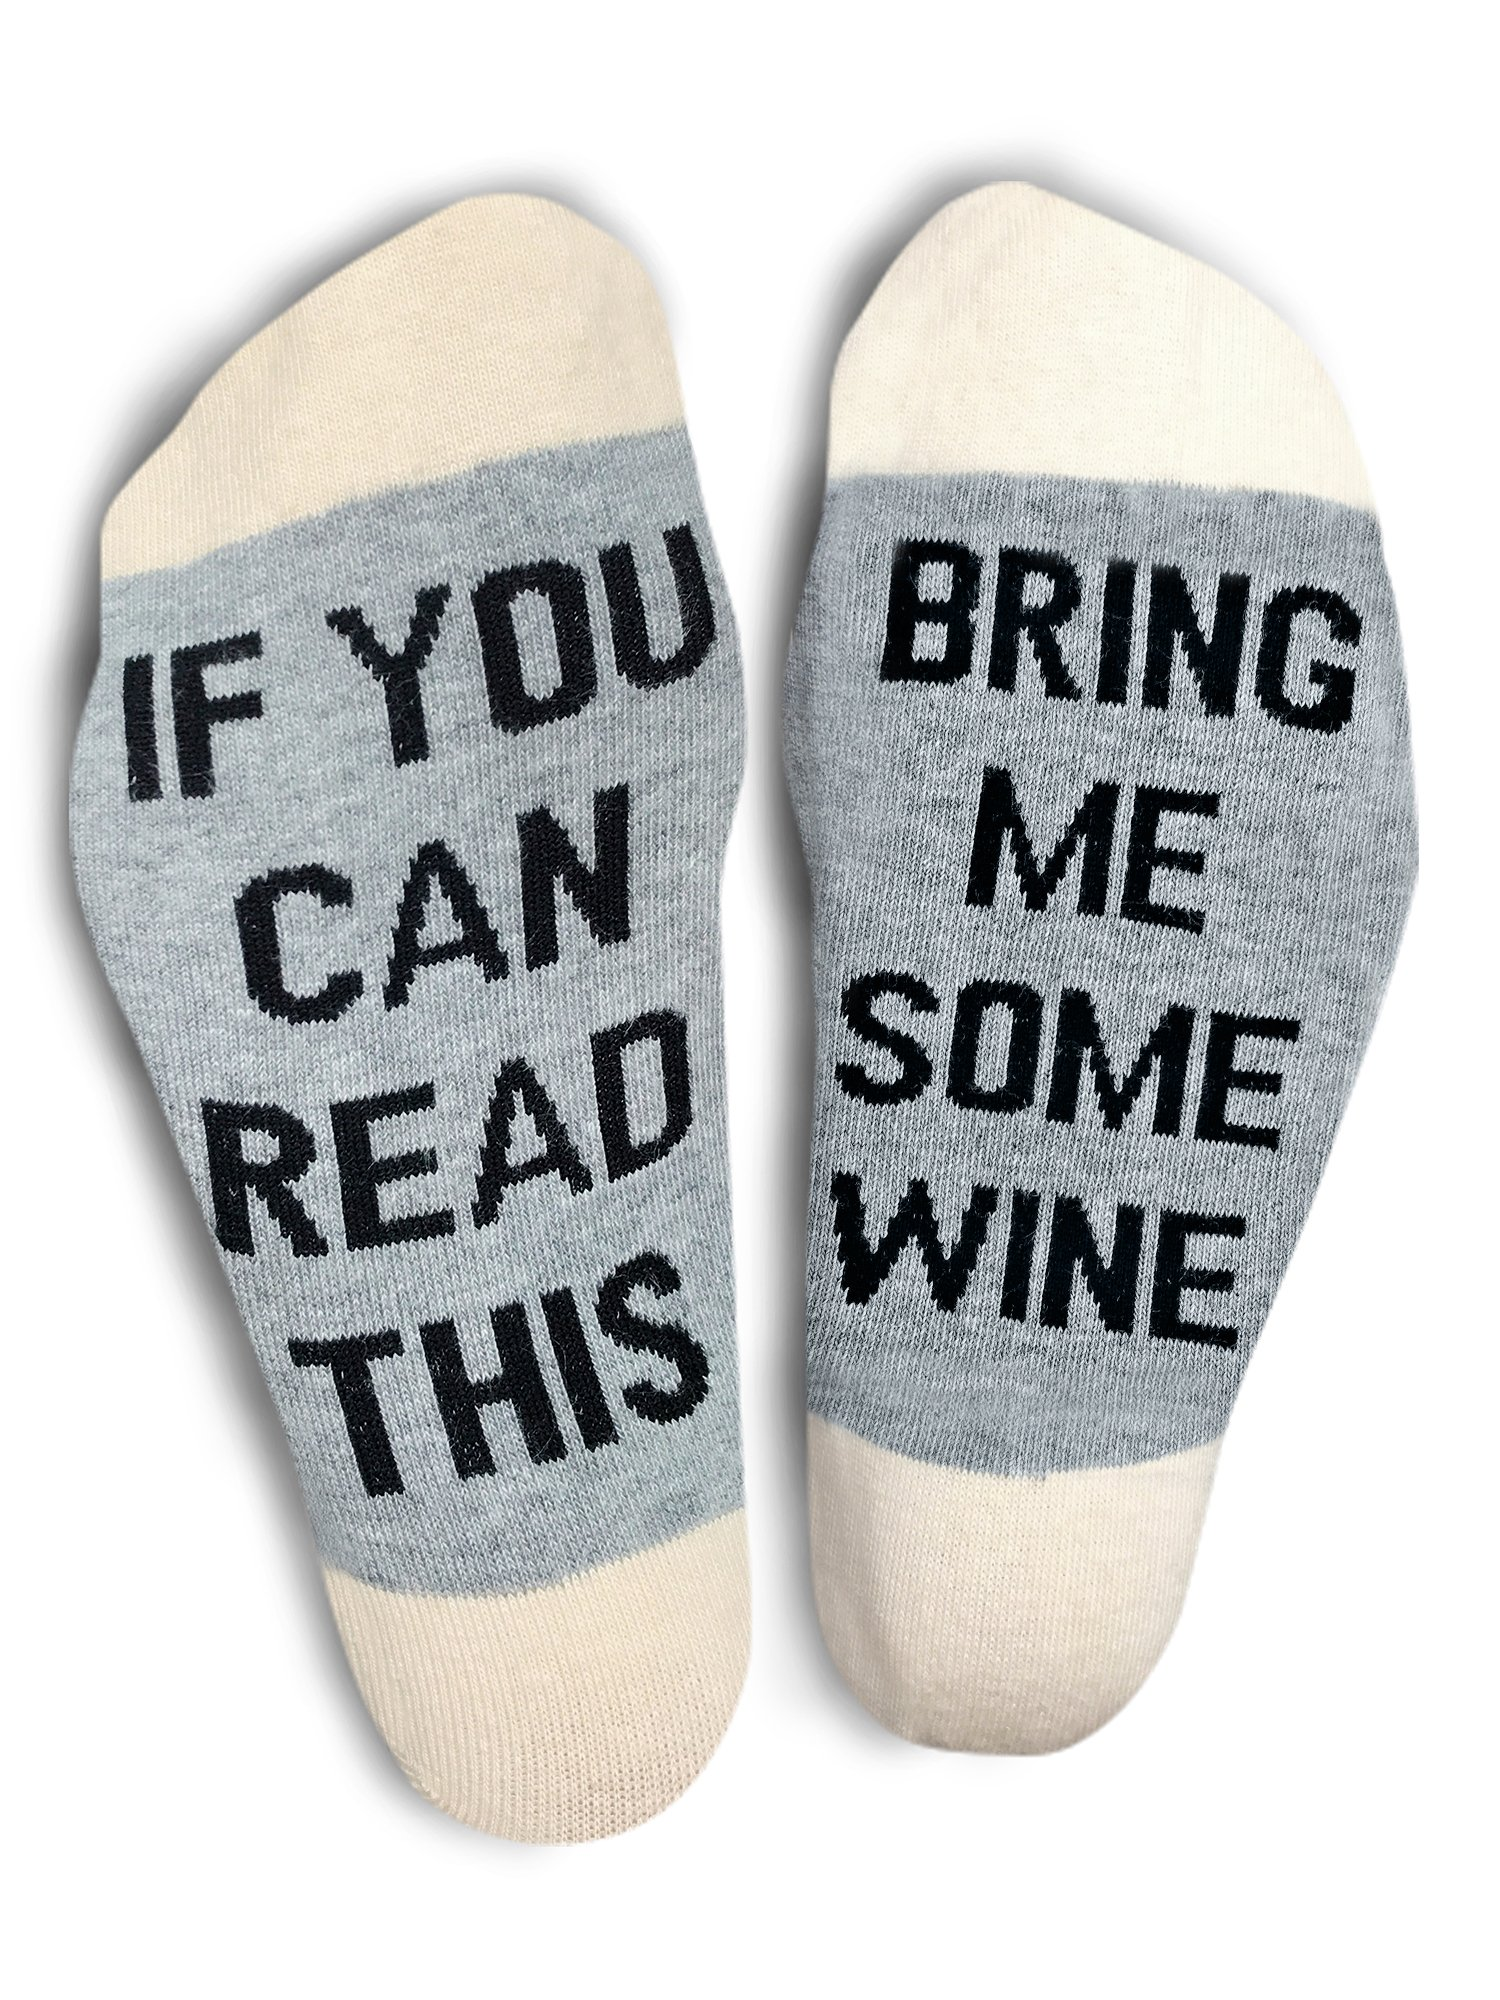 TheOnly Wine Gift Wine Socks - and Gift Box''If you can read this bring me some wine'' Perfect Christmas Gift for Wine Lovers, Birthdays, White Elephant, Mother Gift, Wife or Best Friend Wine Socks by The Only Gift Worth Giving (Image #6)